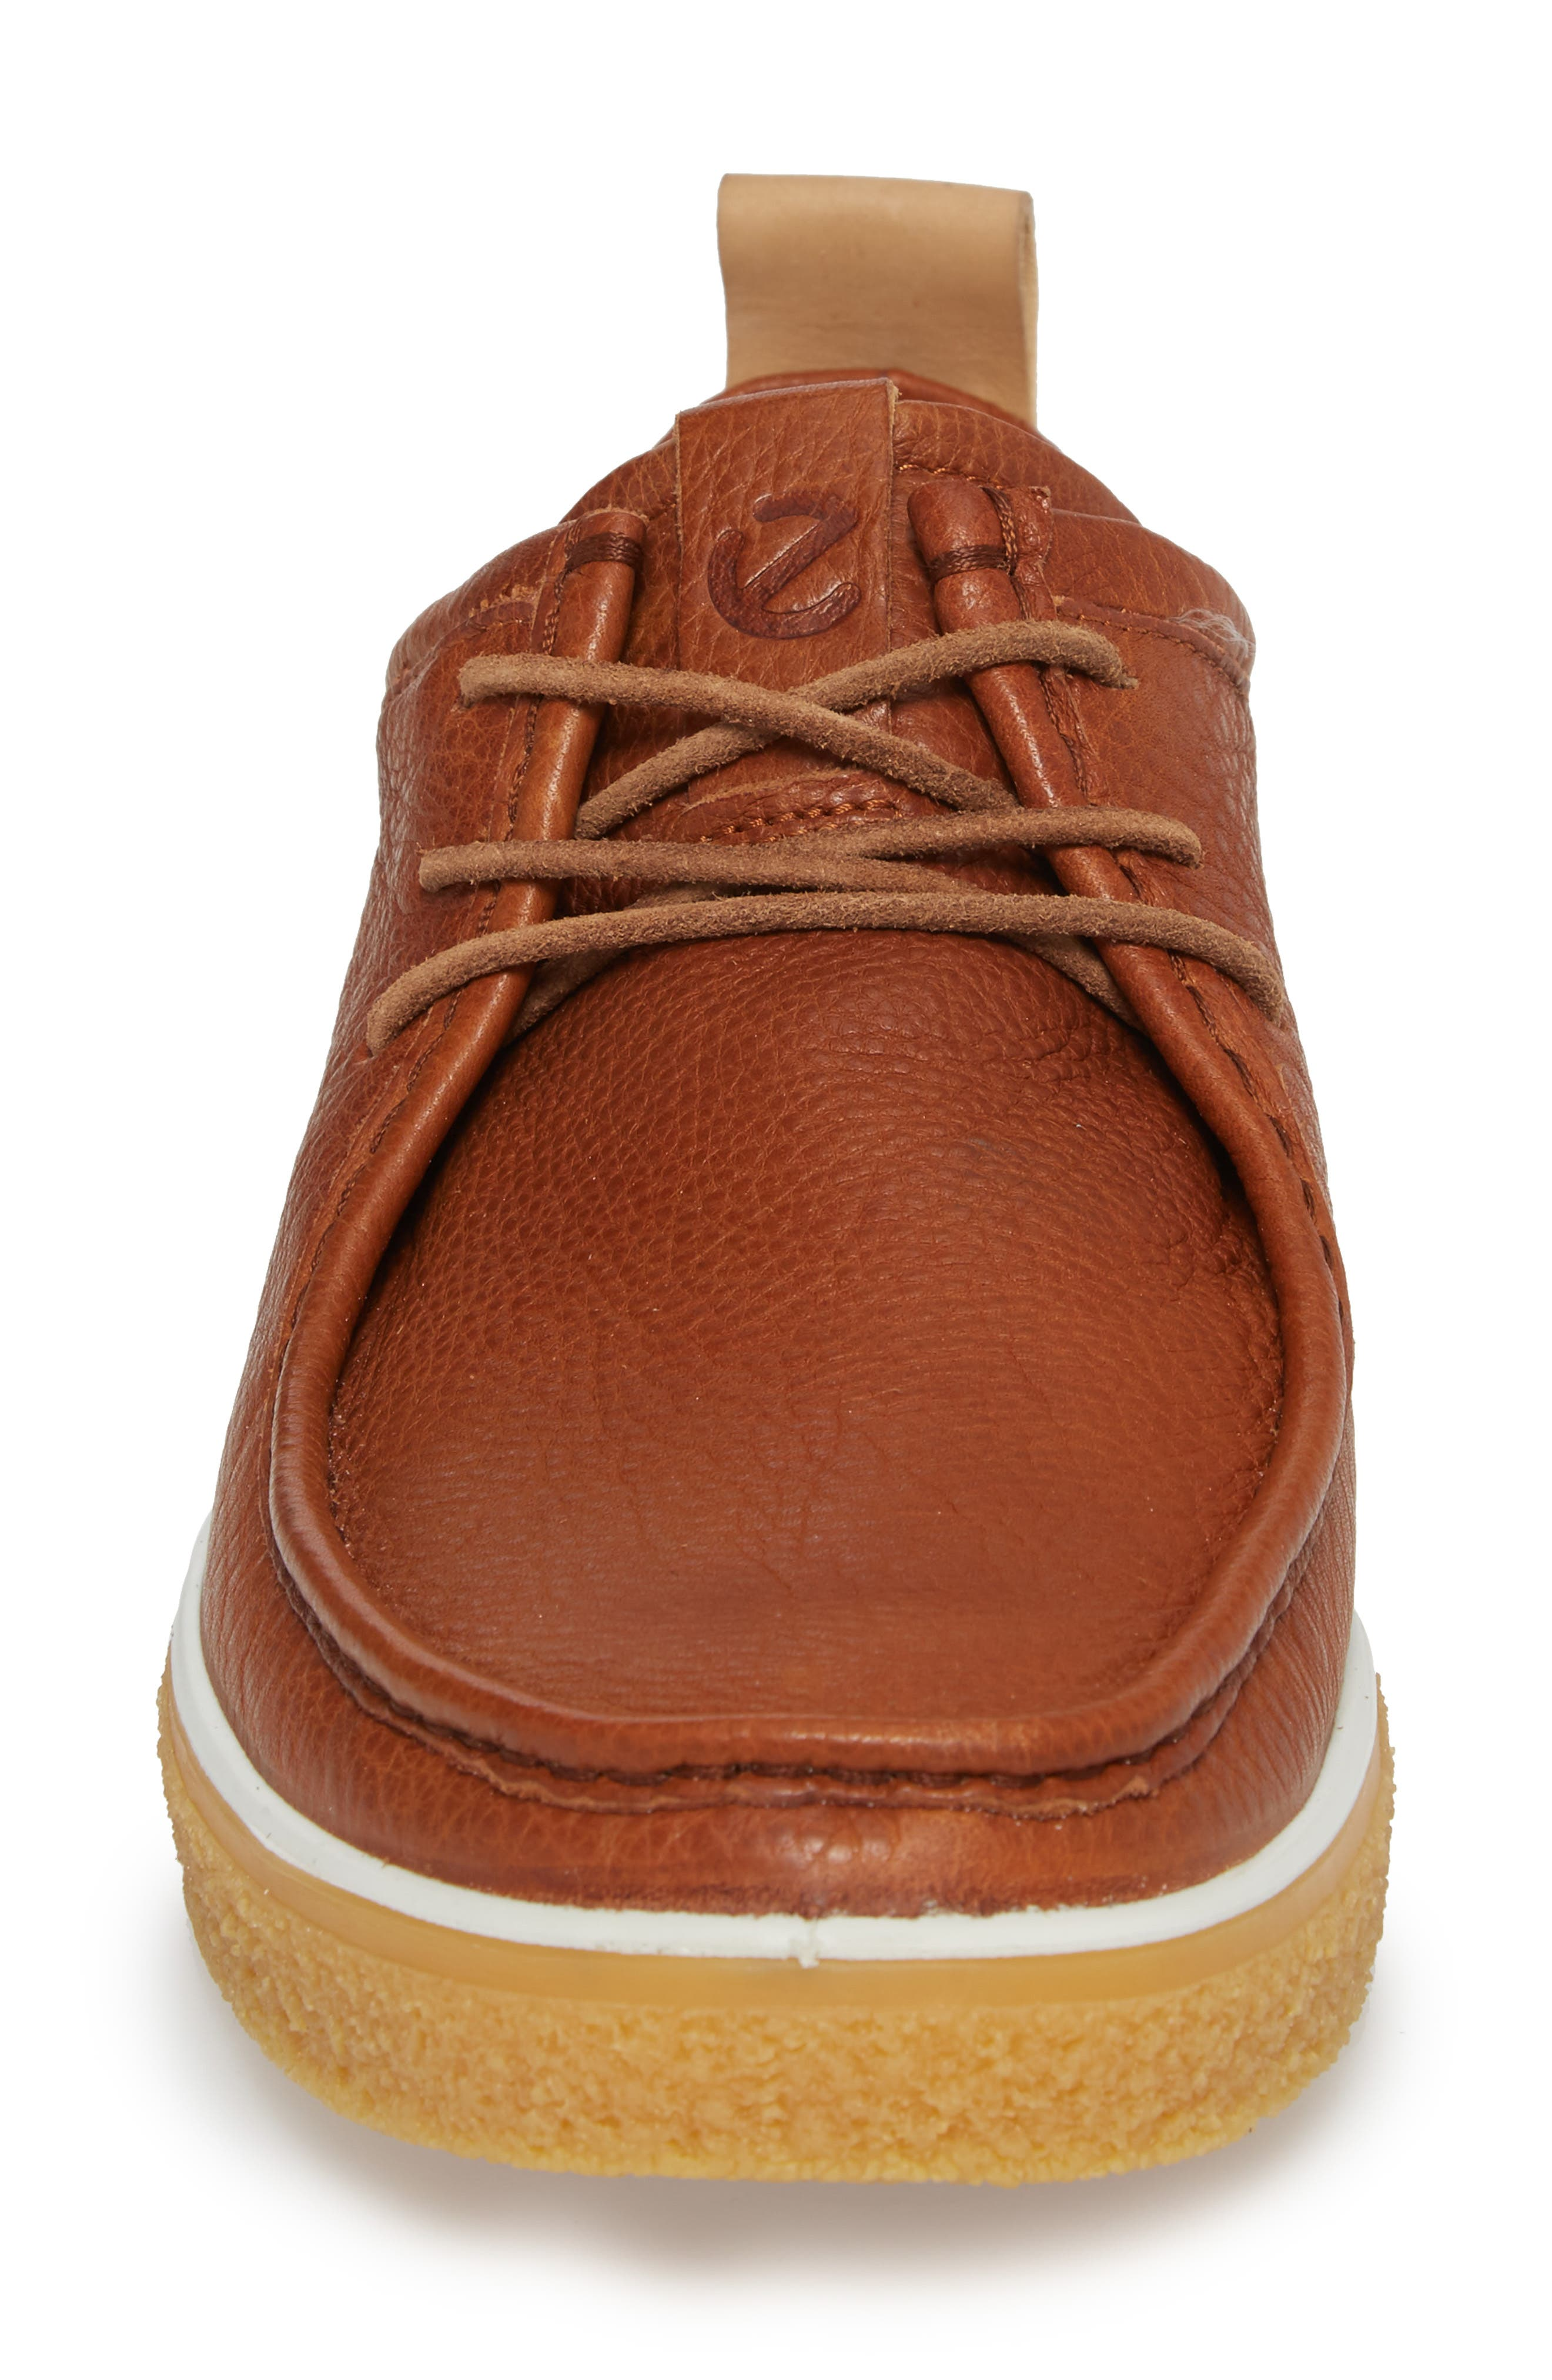 Crepetray Moc Toe Lace-Up,                             Alternate thumbnail 4, color,                             Lion Leather